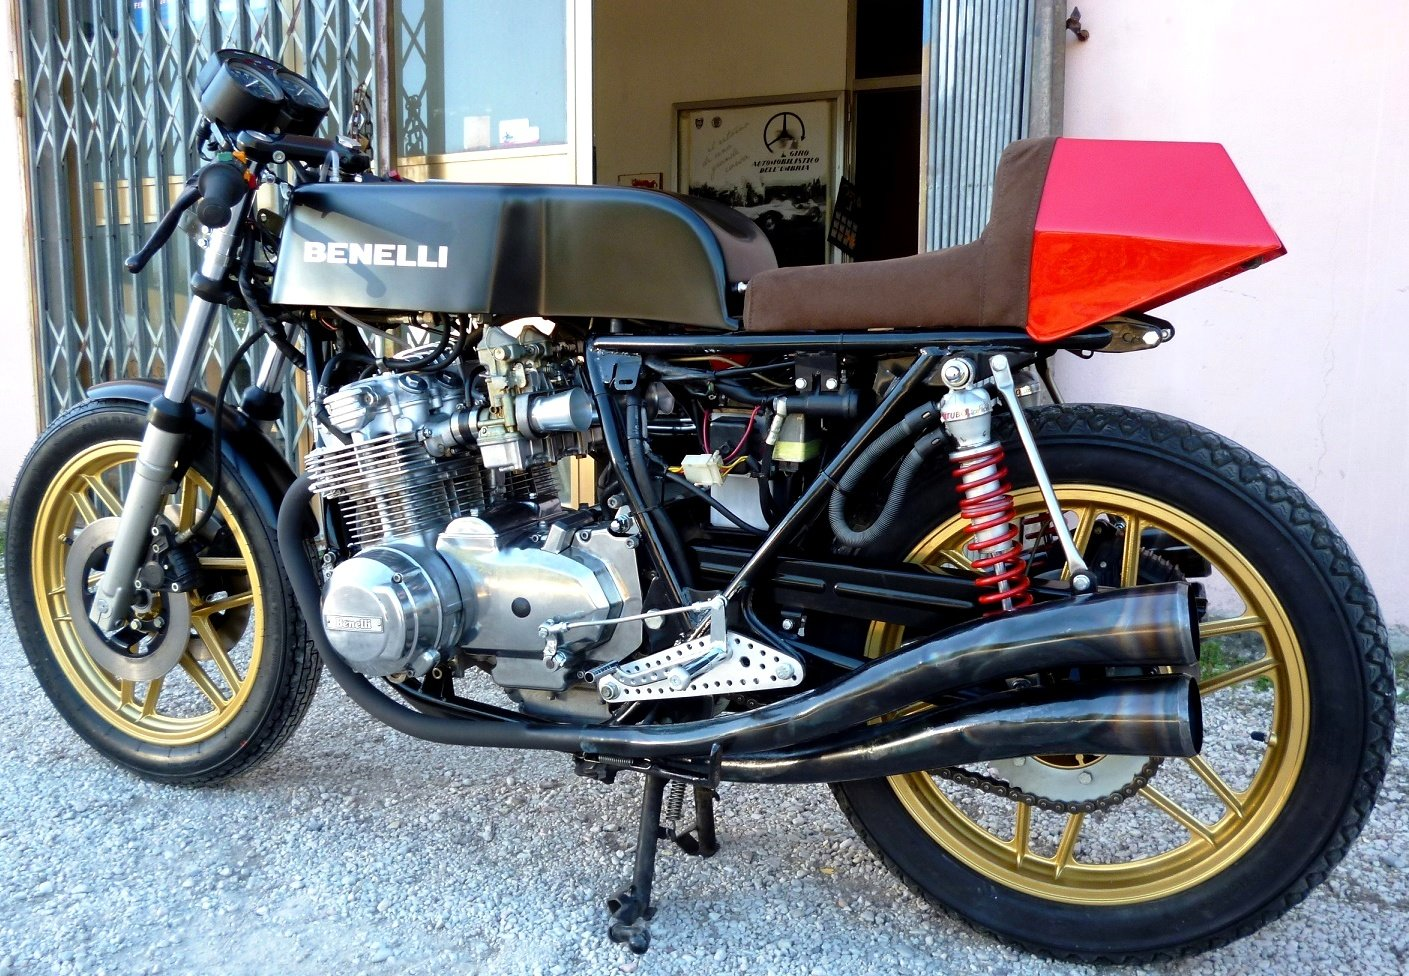 1983 Benelli 500 GP replica For Sale (picture 2 of 6)